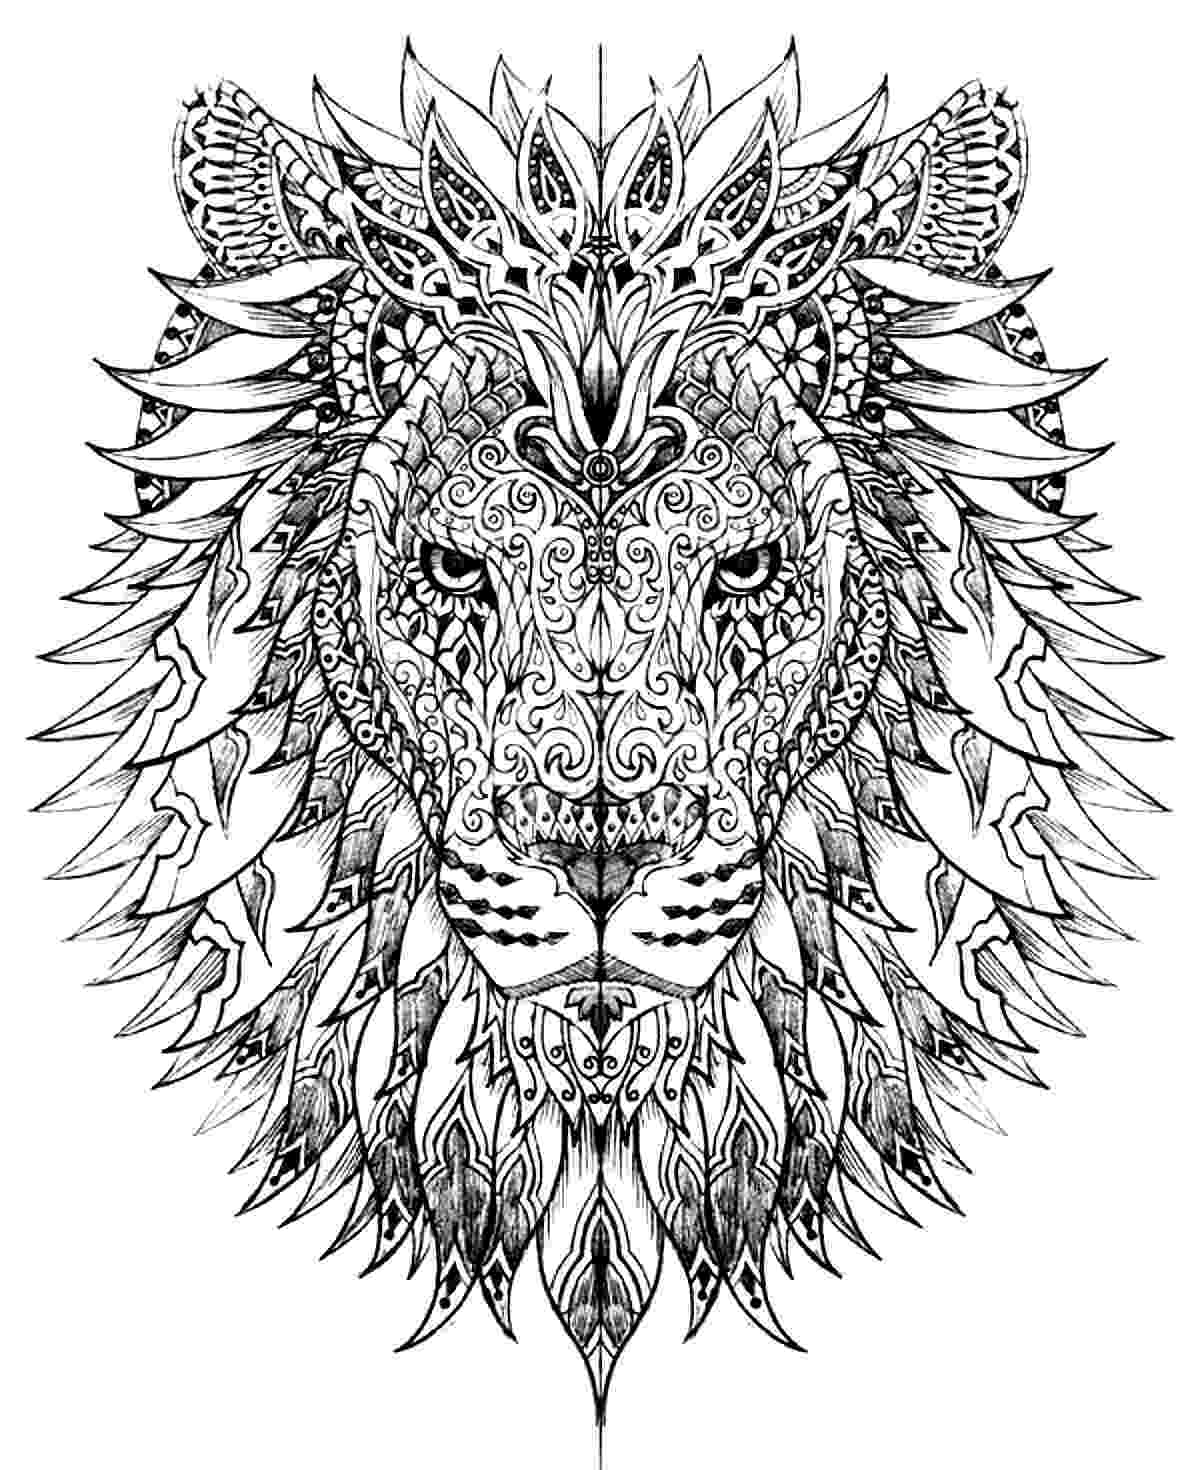 hard coloring page hard coloring pages for adults best coloring pages for kids page coloring hard